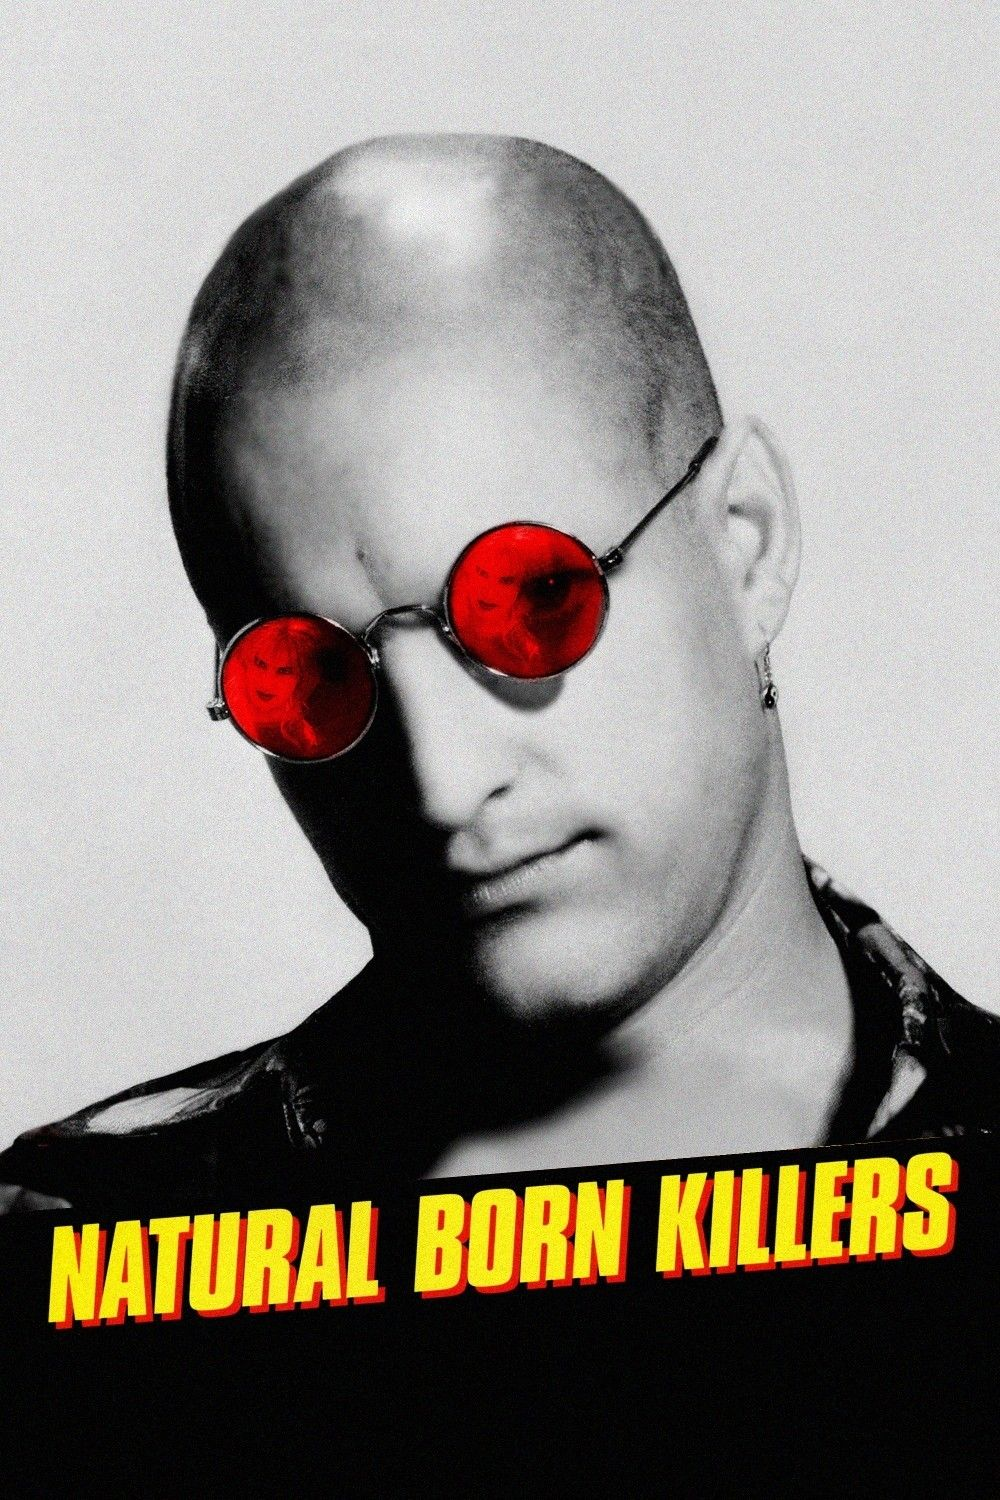 Woody Harrelson By Quentin Tarantino Natural Born Killers Streaming Movies Online Hd Movies Online